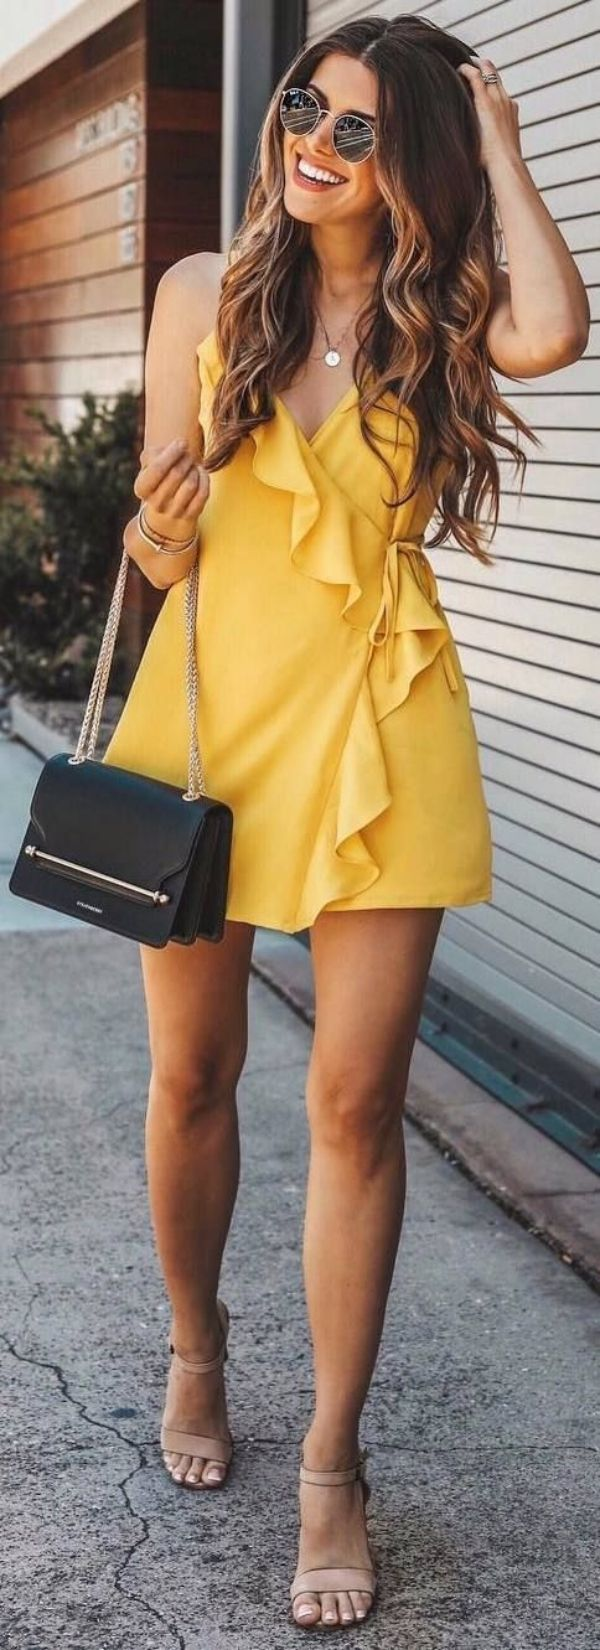 55+ Cute Outfits Ideas for Spring to Copy